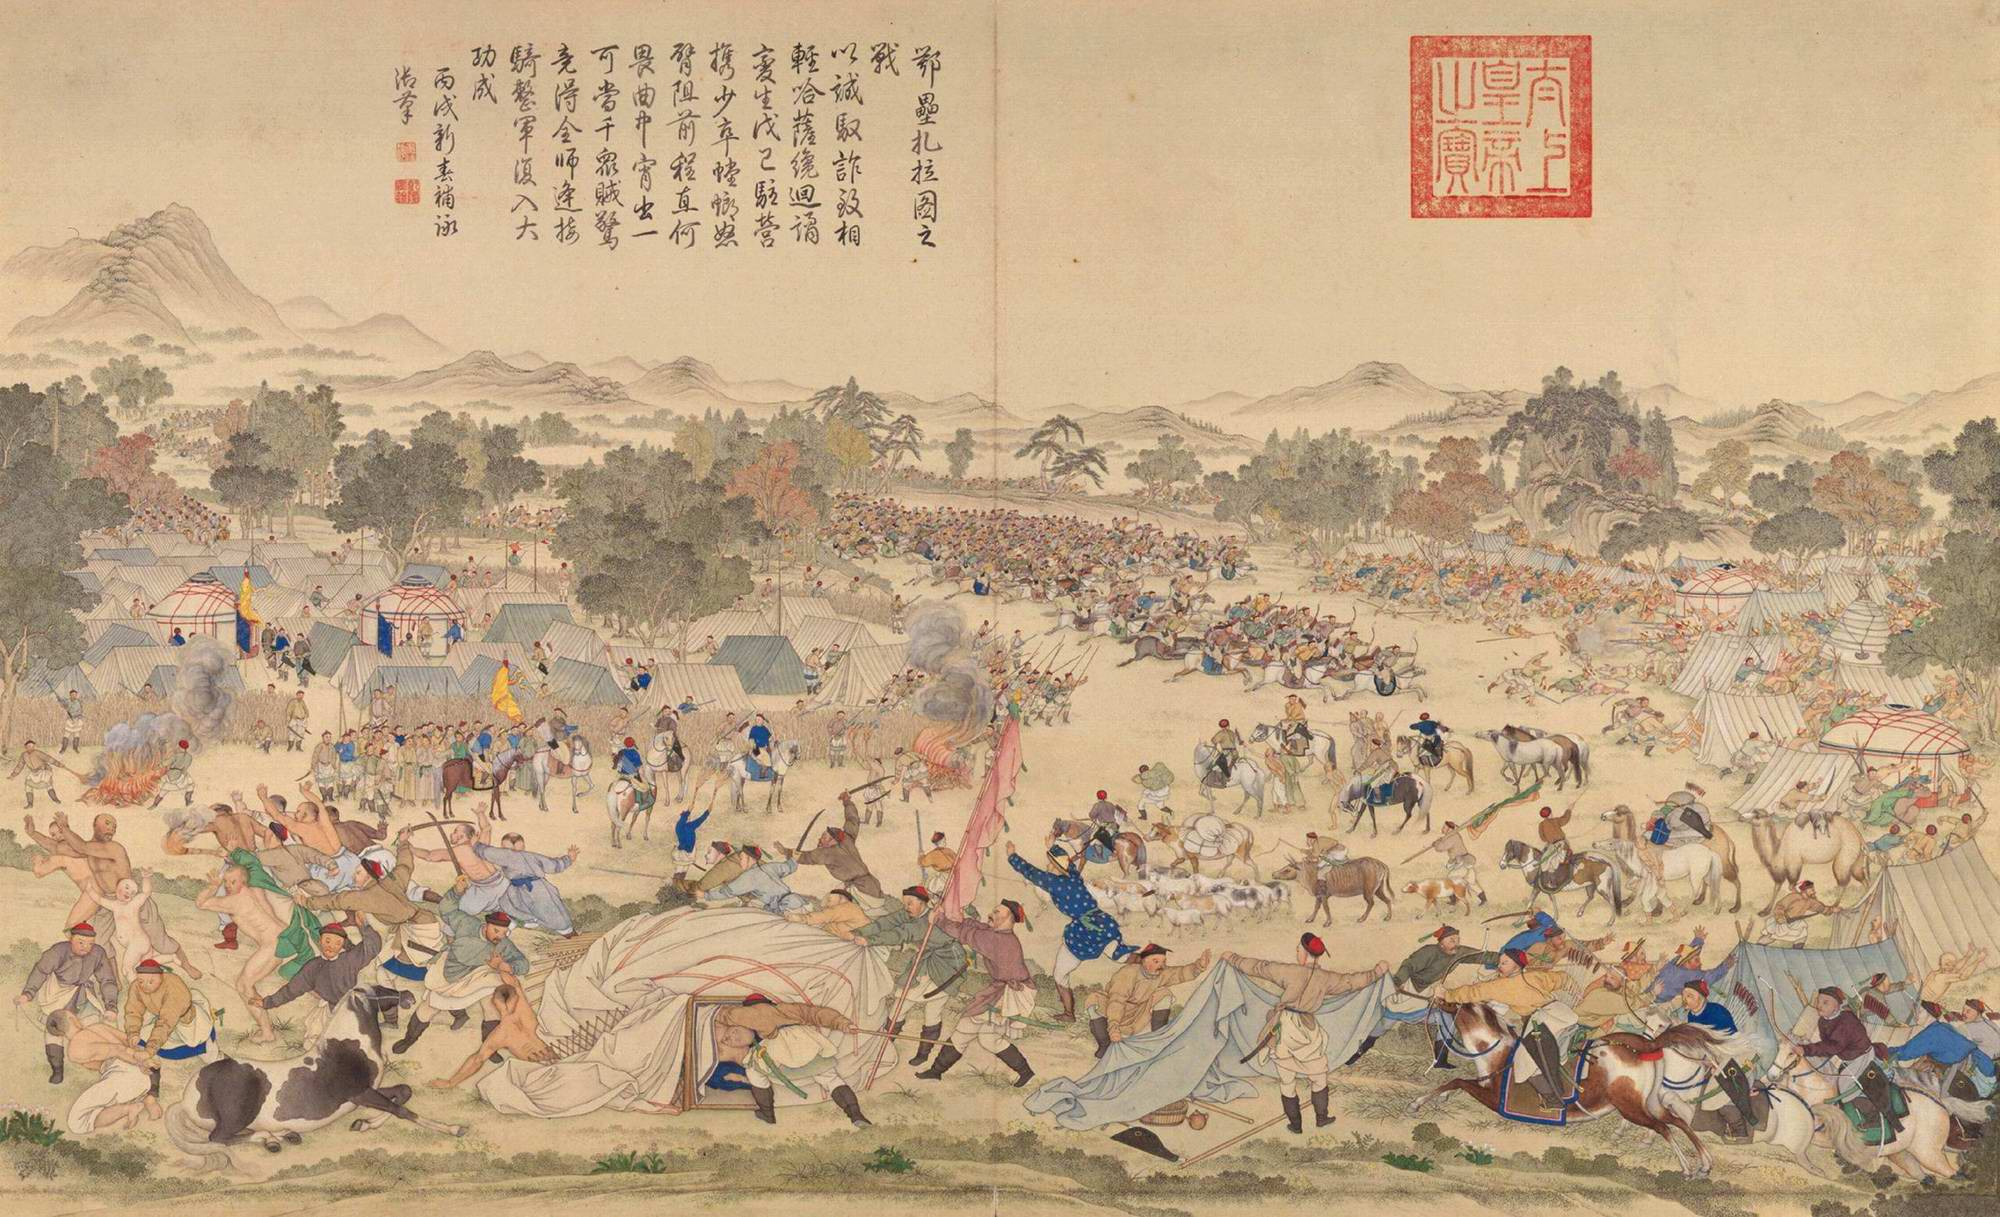 the war history of china in the 19th century